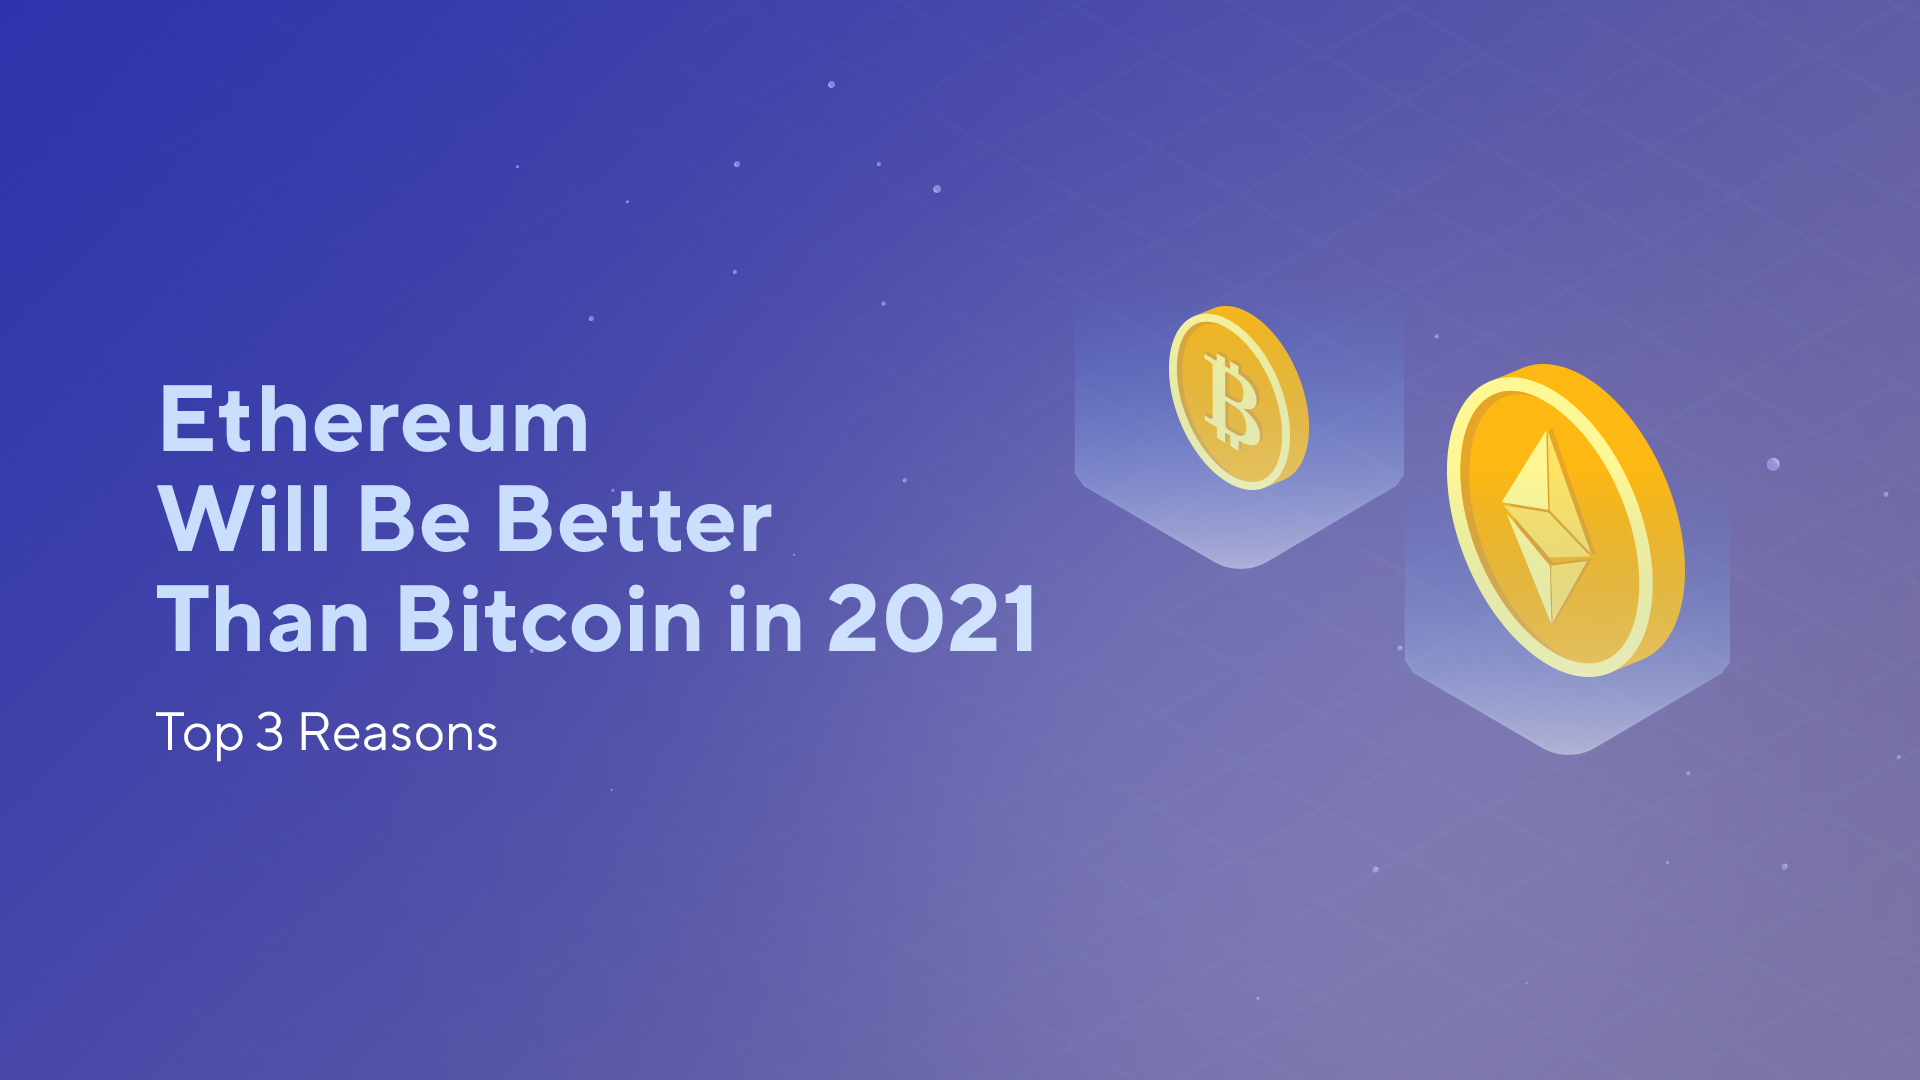 Ethereum Will Be Better Than Bitcoin in 2021: Top 3 Reasons